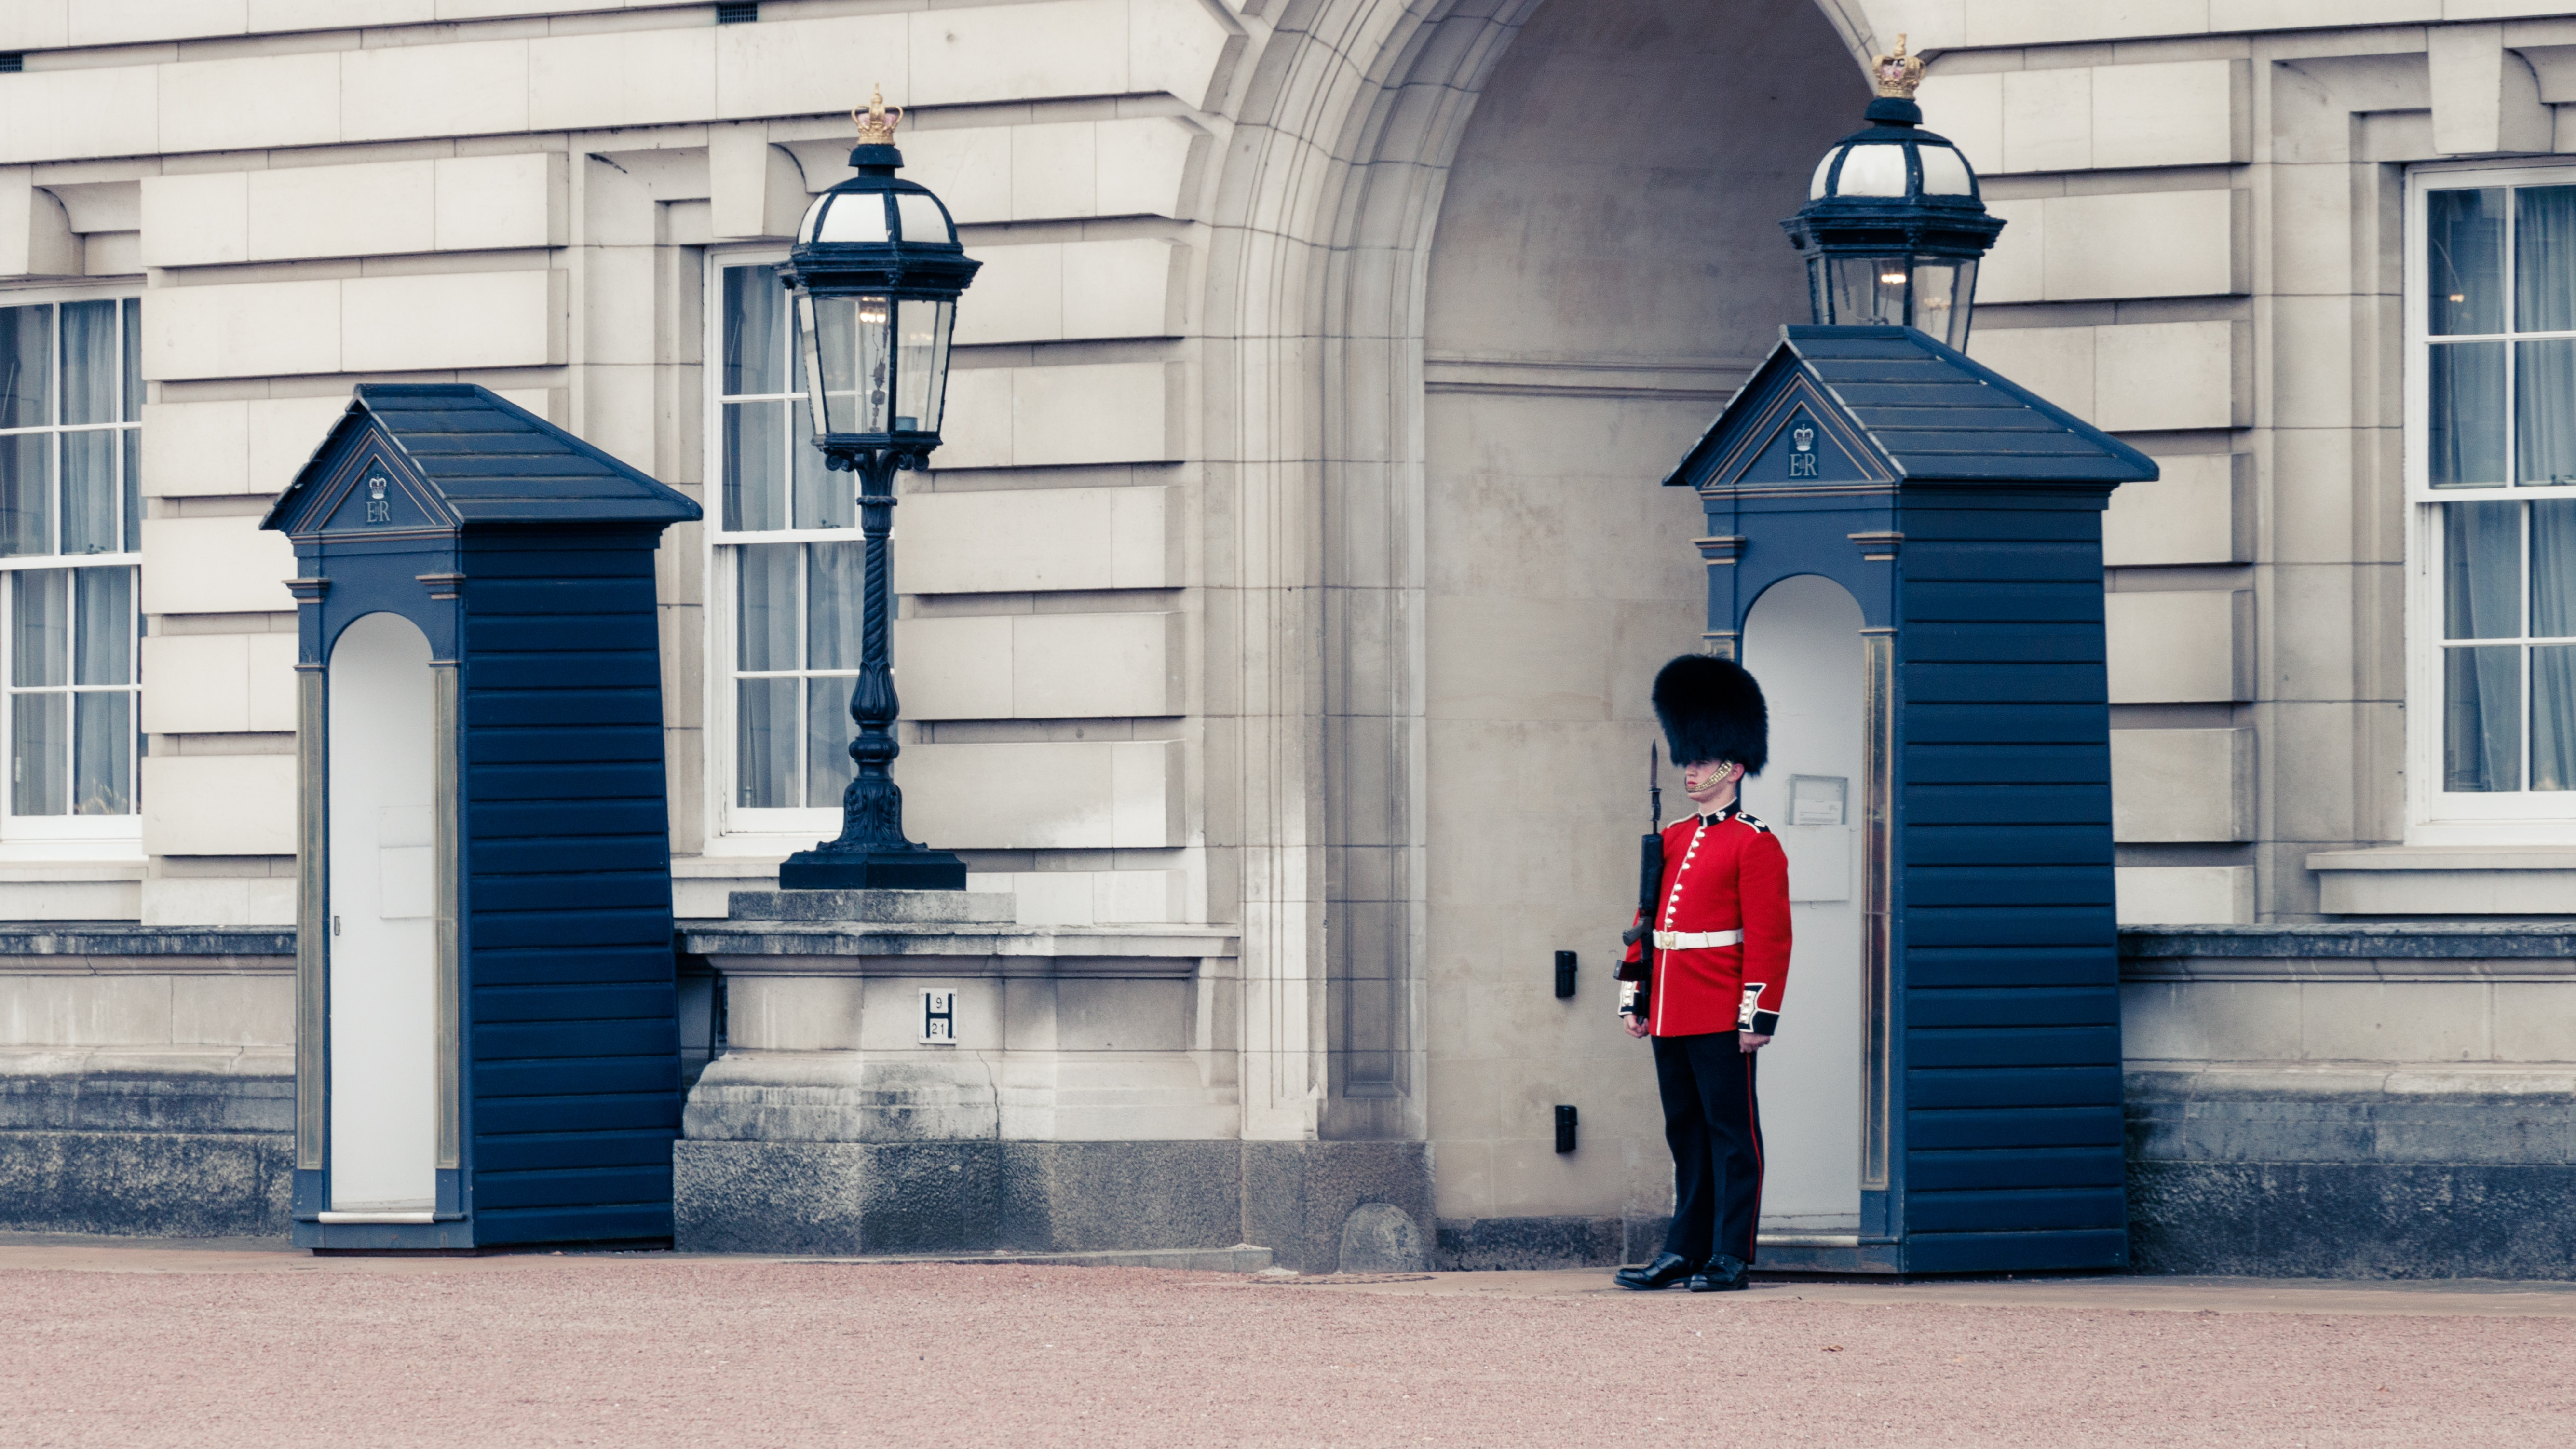 Look out for the Changing of the Guard!